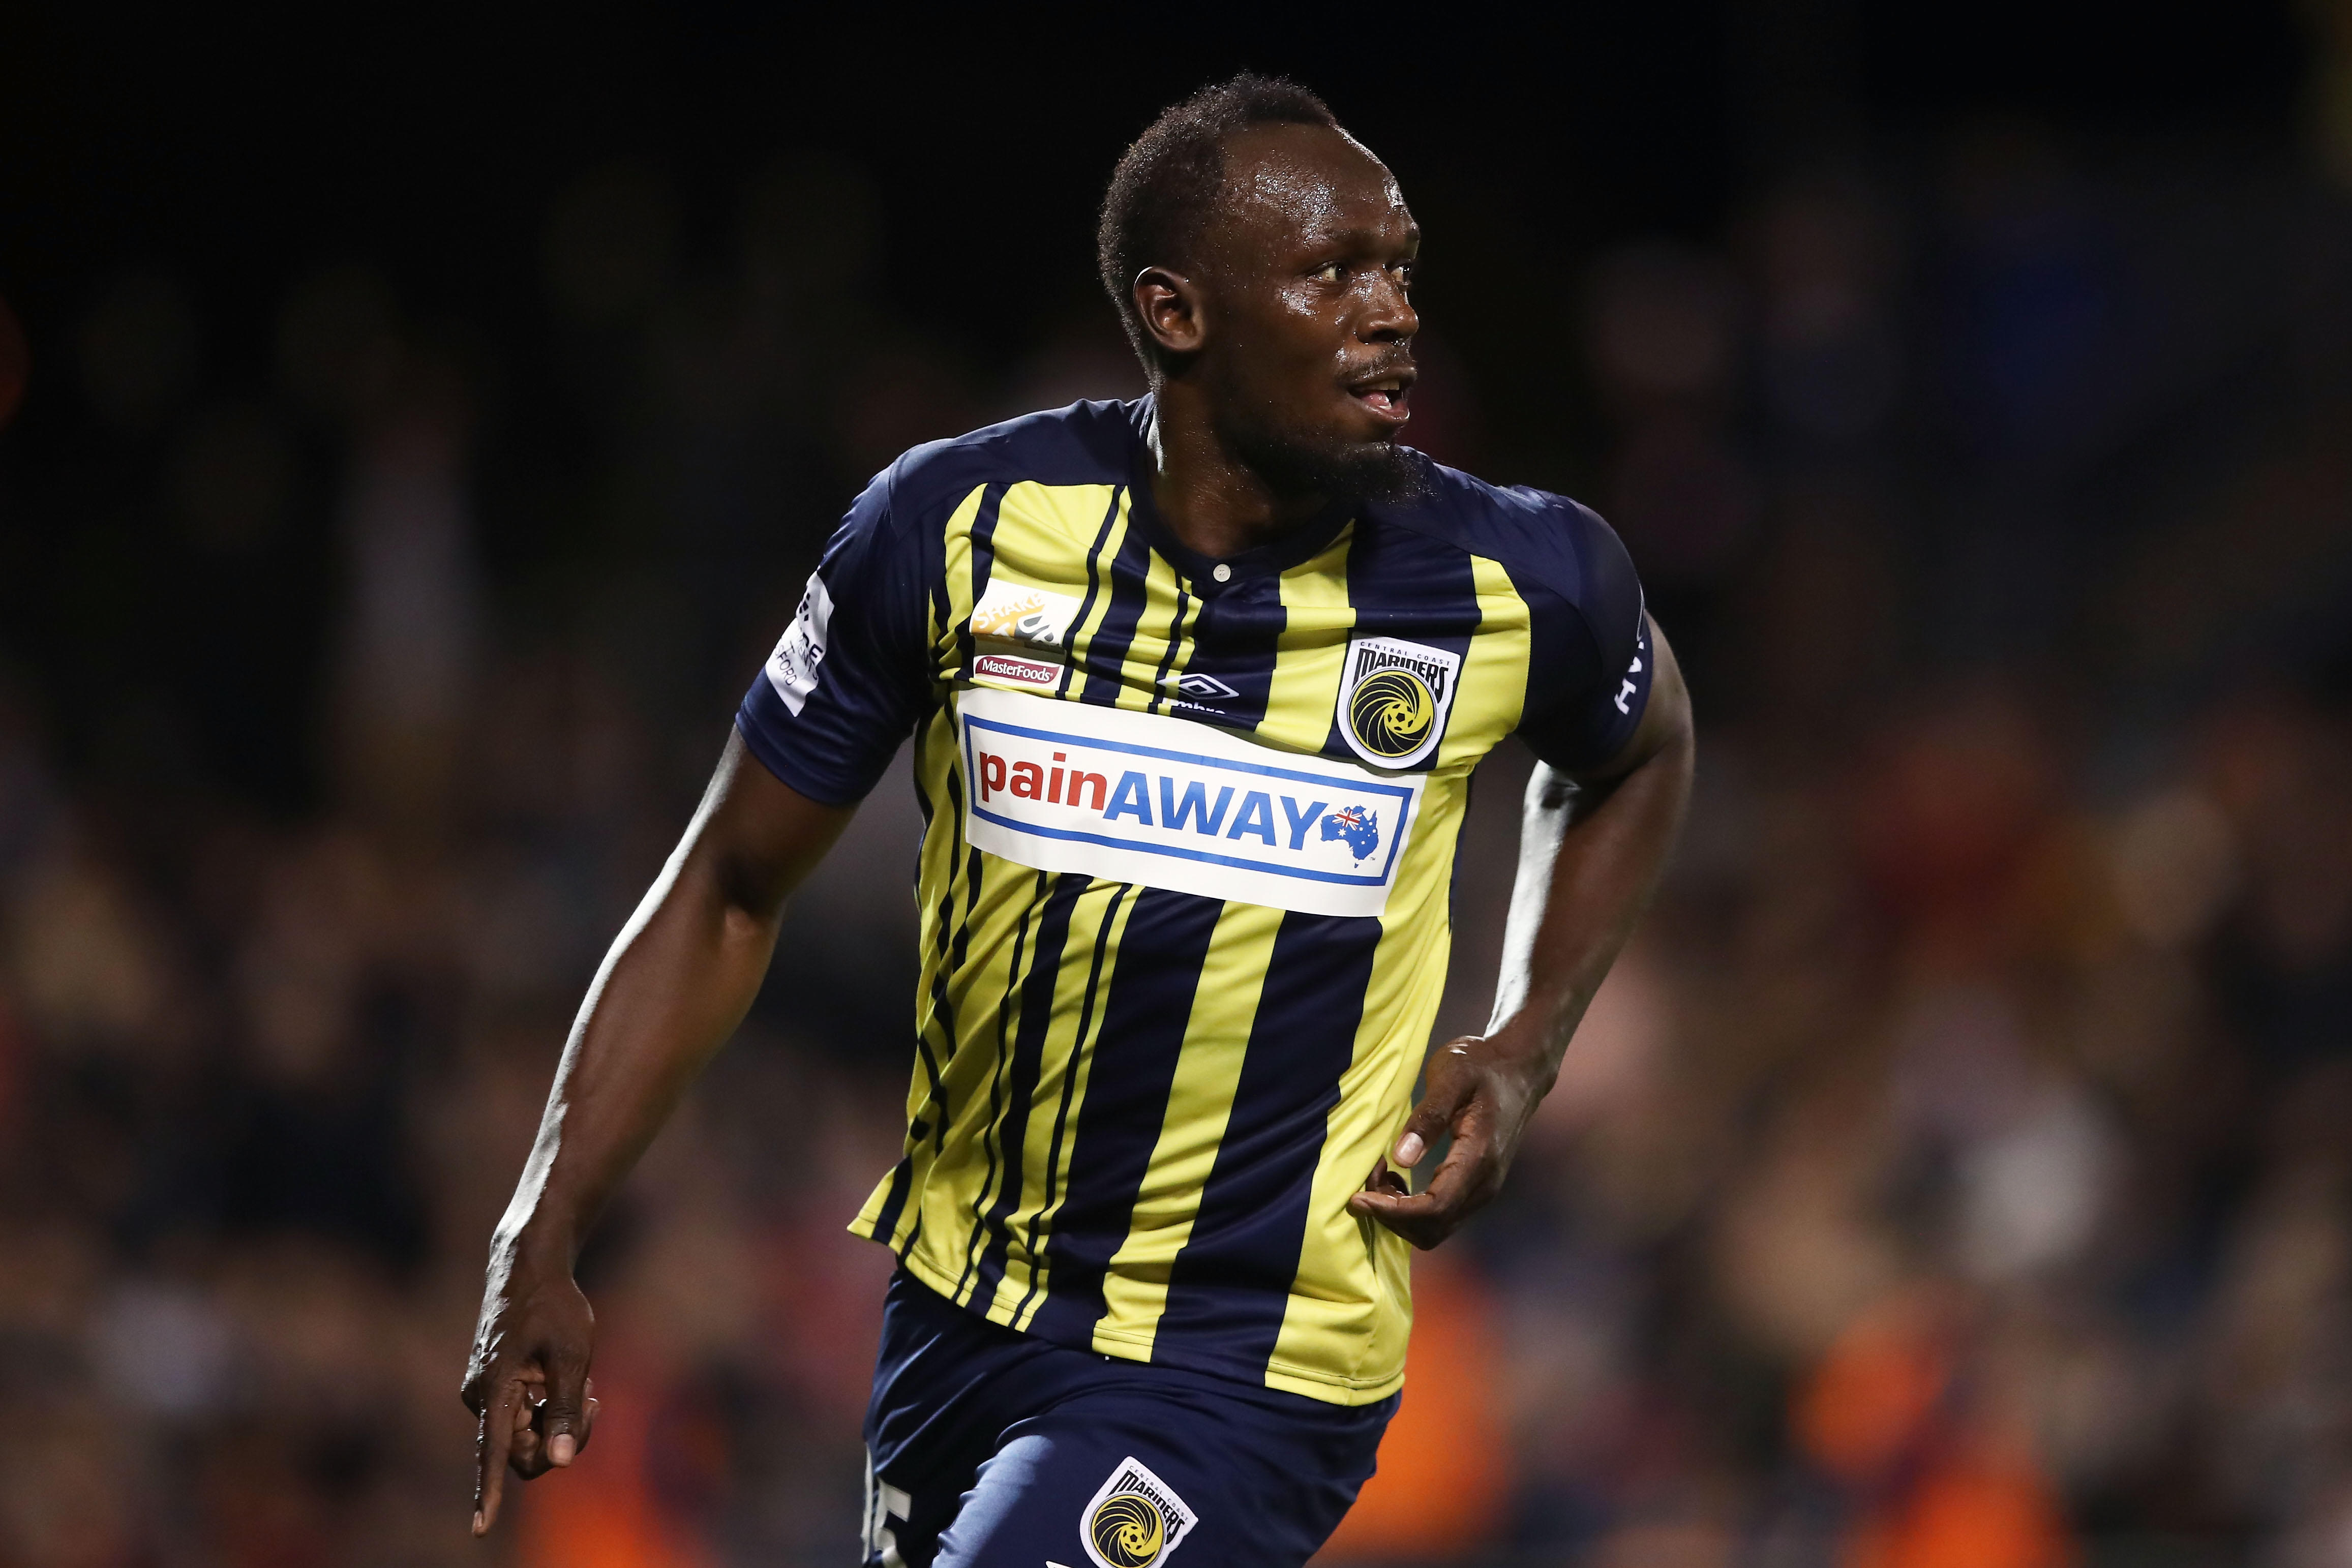 fa7c0860c Usain Bolt  Soccer debut with Central Coast Mariners in Australia A ...